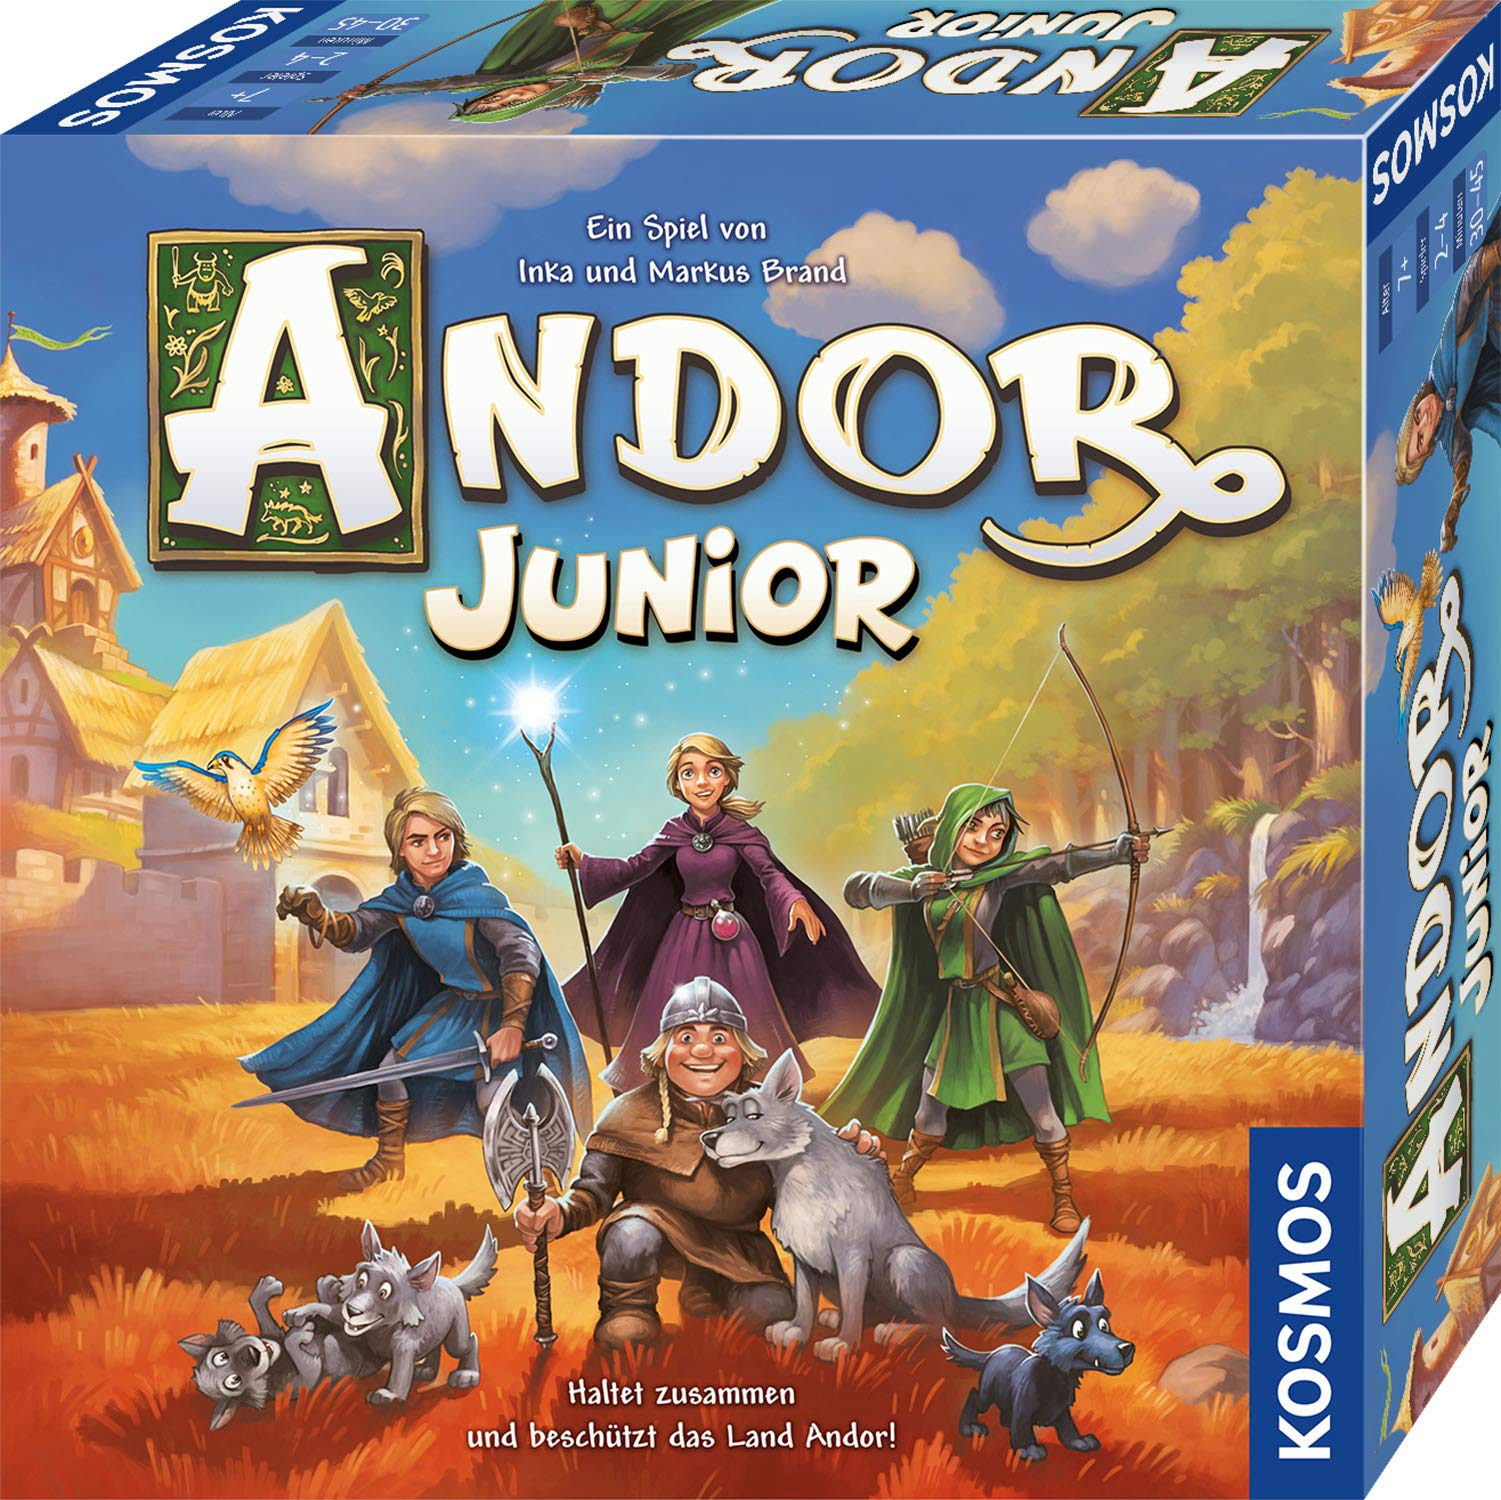 Andor Junior: Kinderspiel: Amazon.es: Libros en idiomas extranjeros